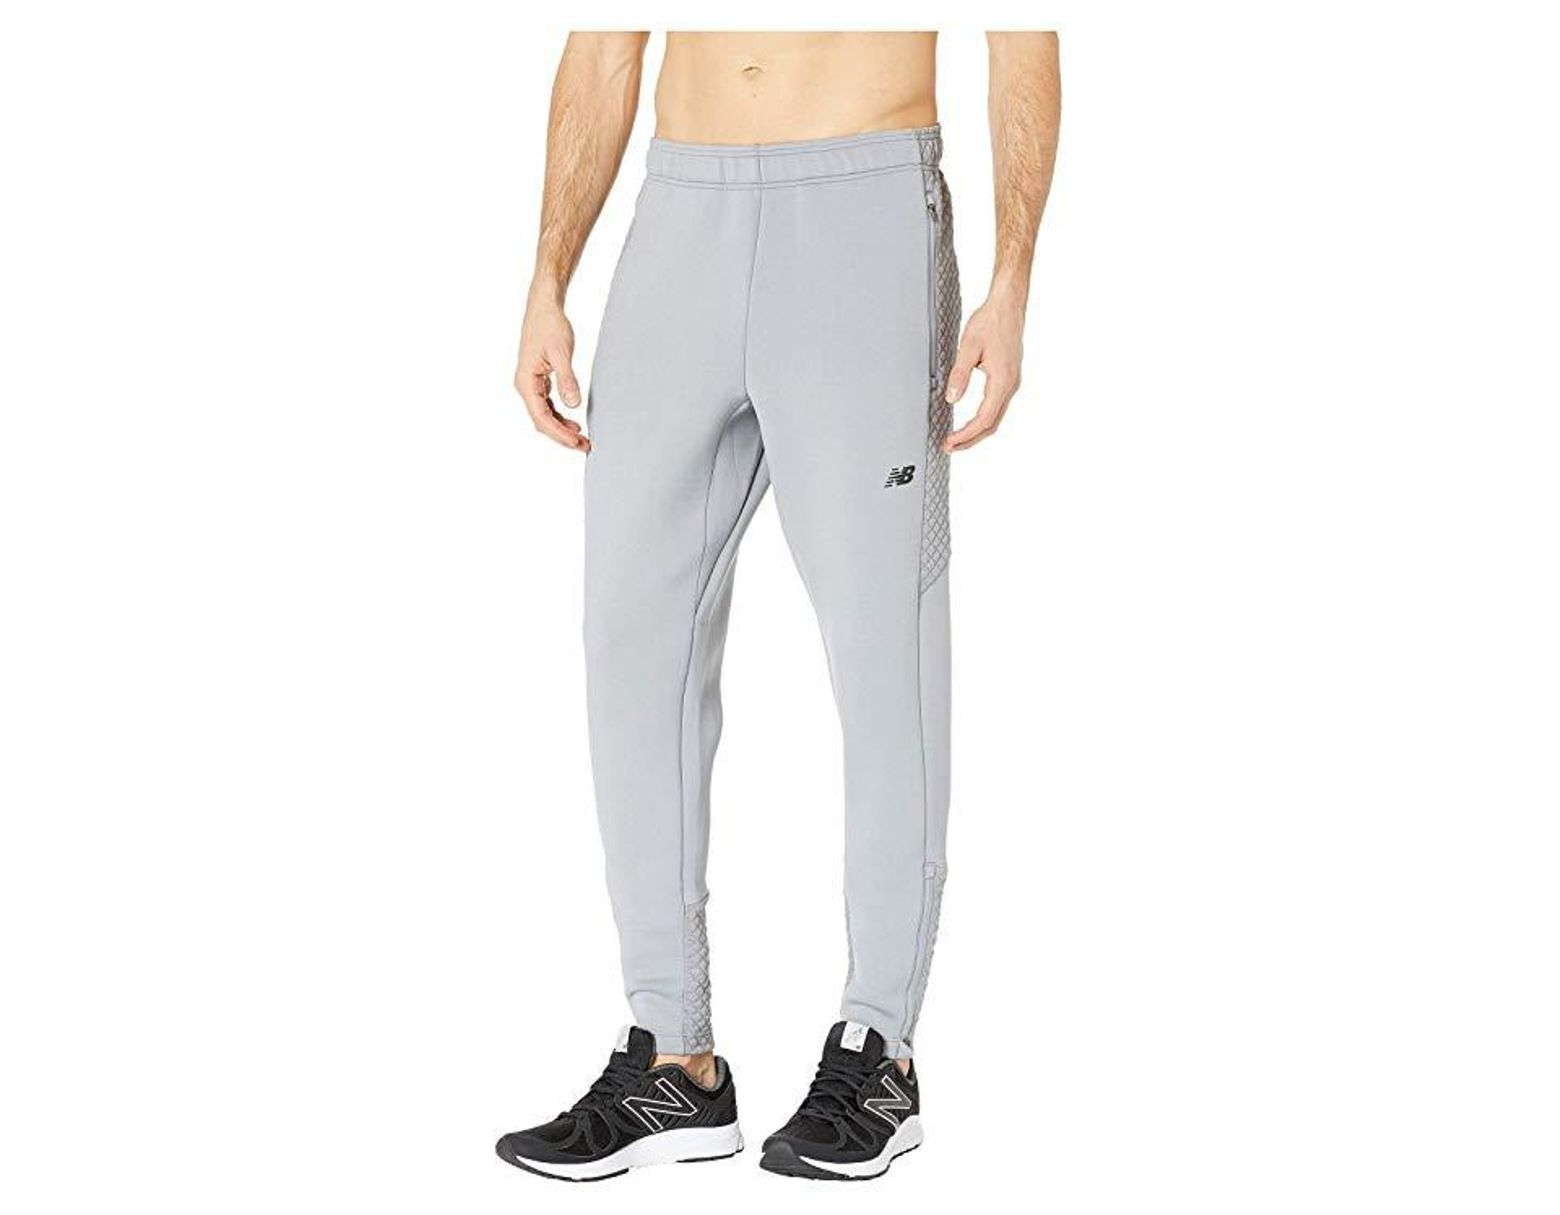 3251acf5b39ef New Balance Nb Heat Loft Pants (athletic Grey) Workout in Gray for Men -  Save 57% - Lyst